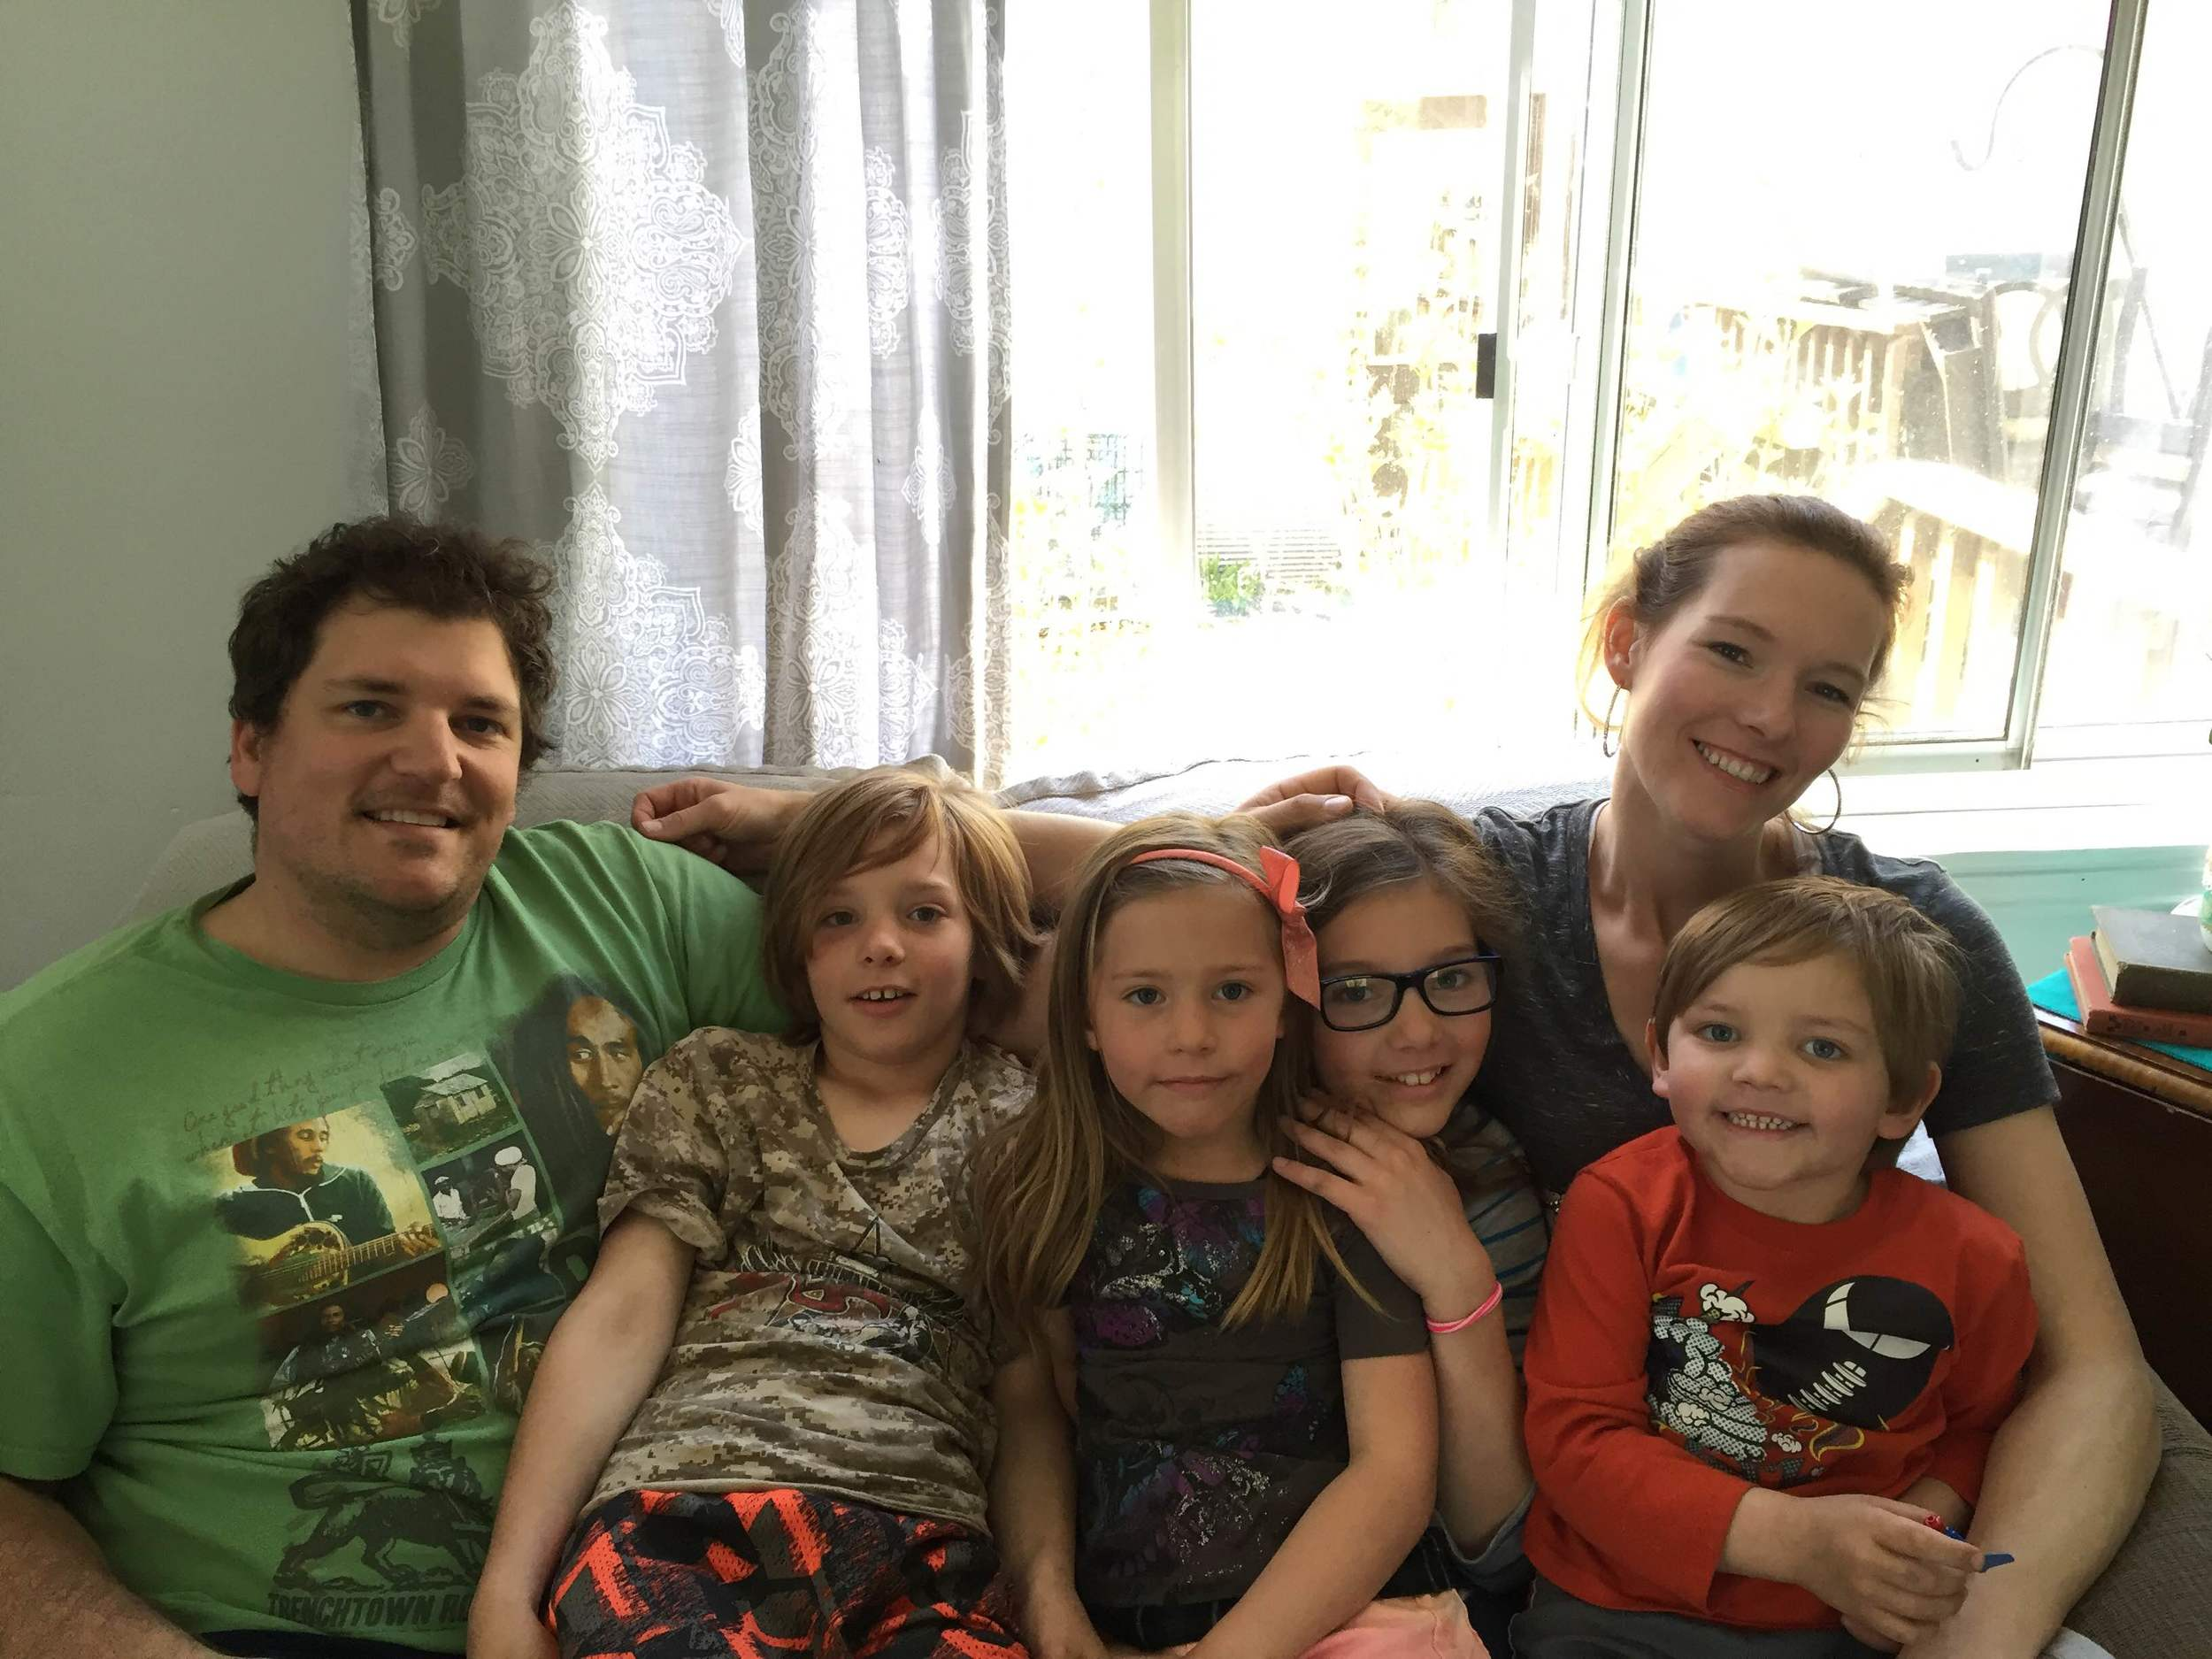 Sarah, her husband Ed and their four children have lived in their home for 12 years.